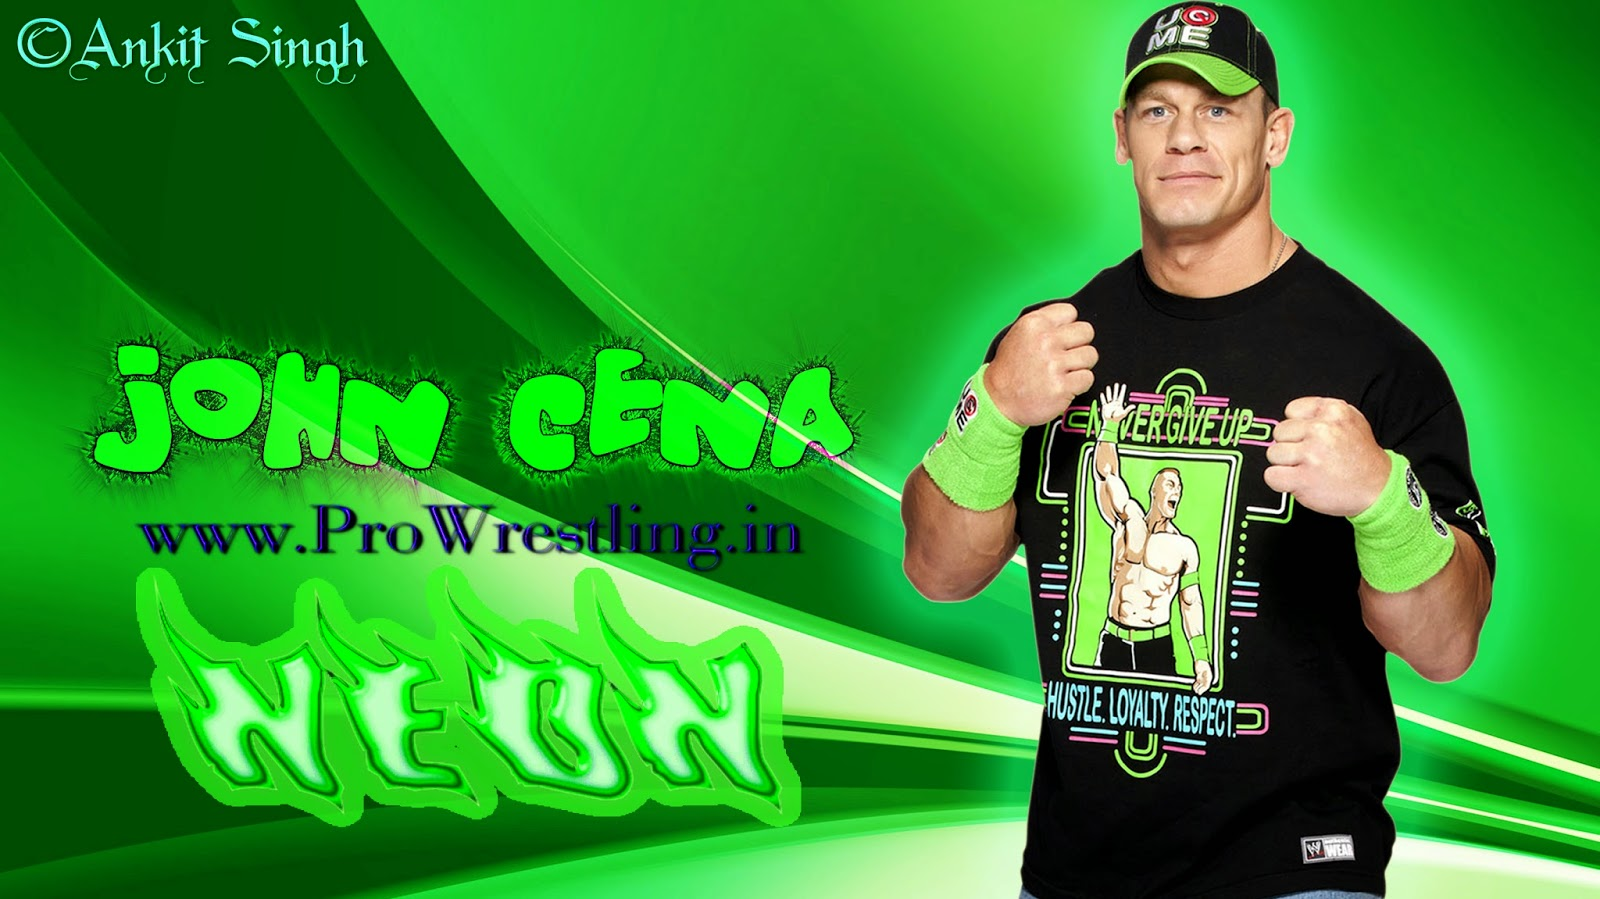 Wallpaper John Cena Brand New NEON HD Wallpaper 2014 By Ankit 1600x899